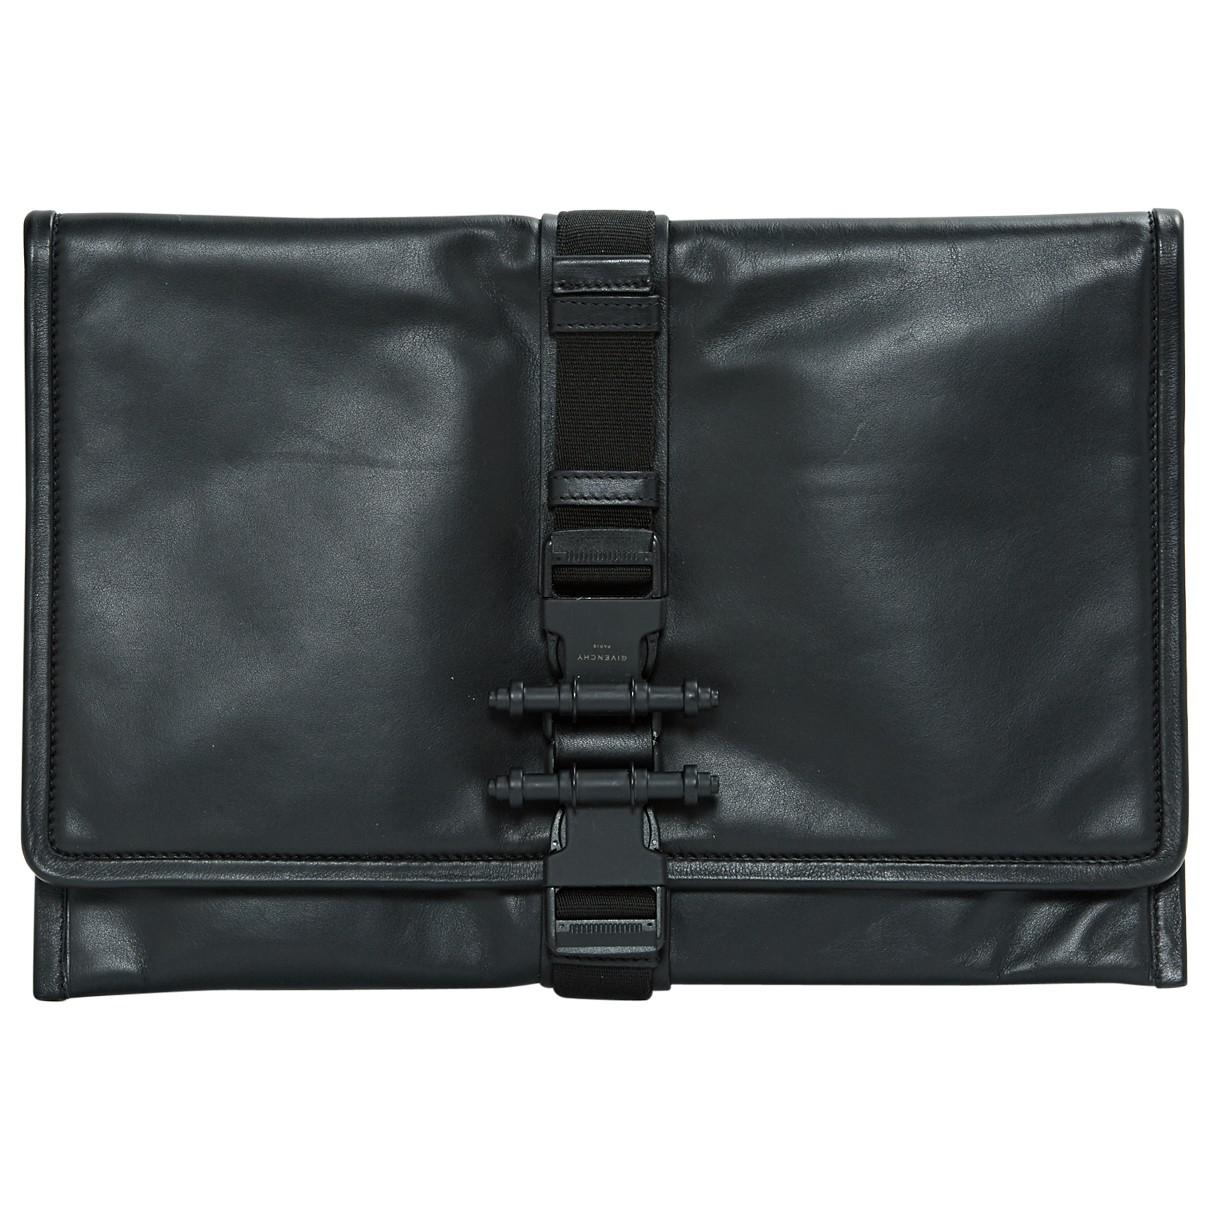 Givenchy Pre-owned - Leather clutch bag BMWMMg